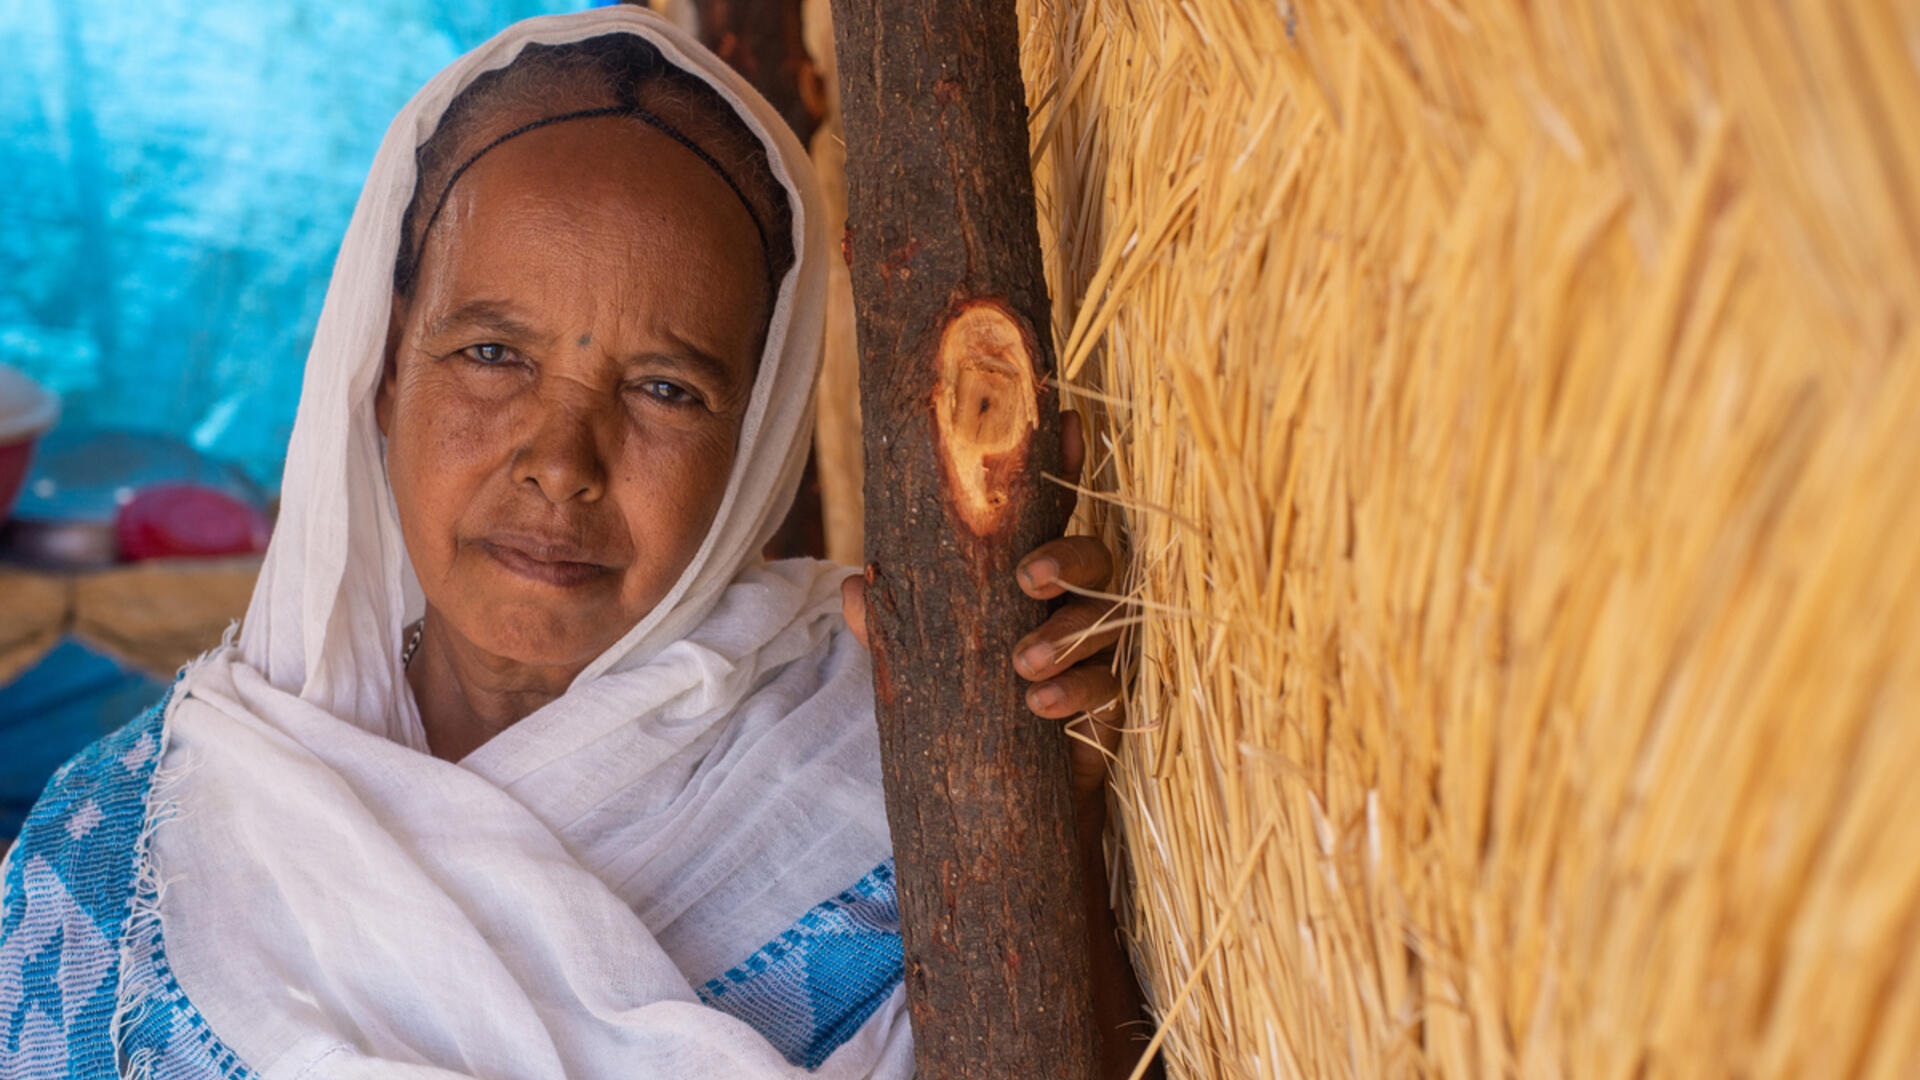 60-year old Berhan leans against a wooden beam supporting a thatched shelter where she lives in Sudan.